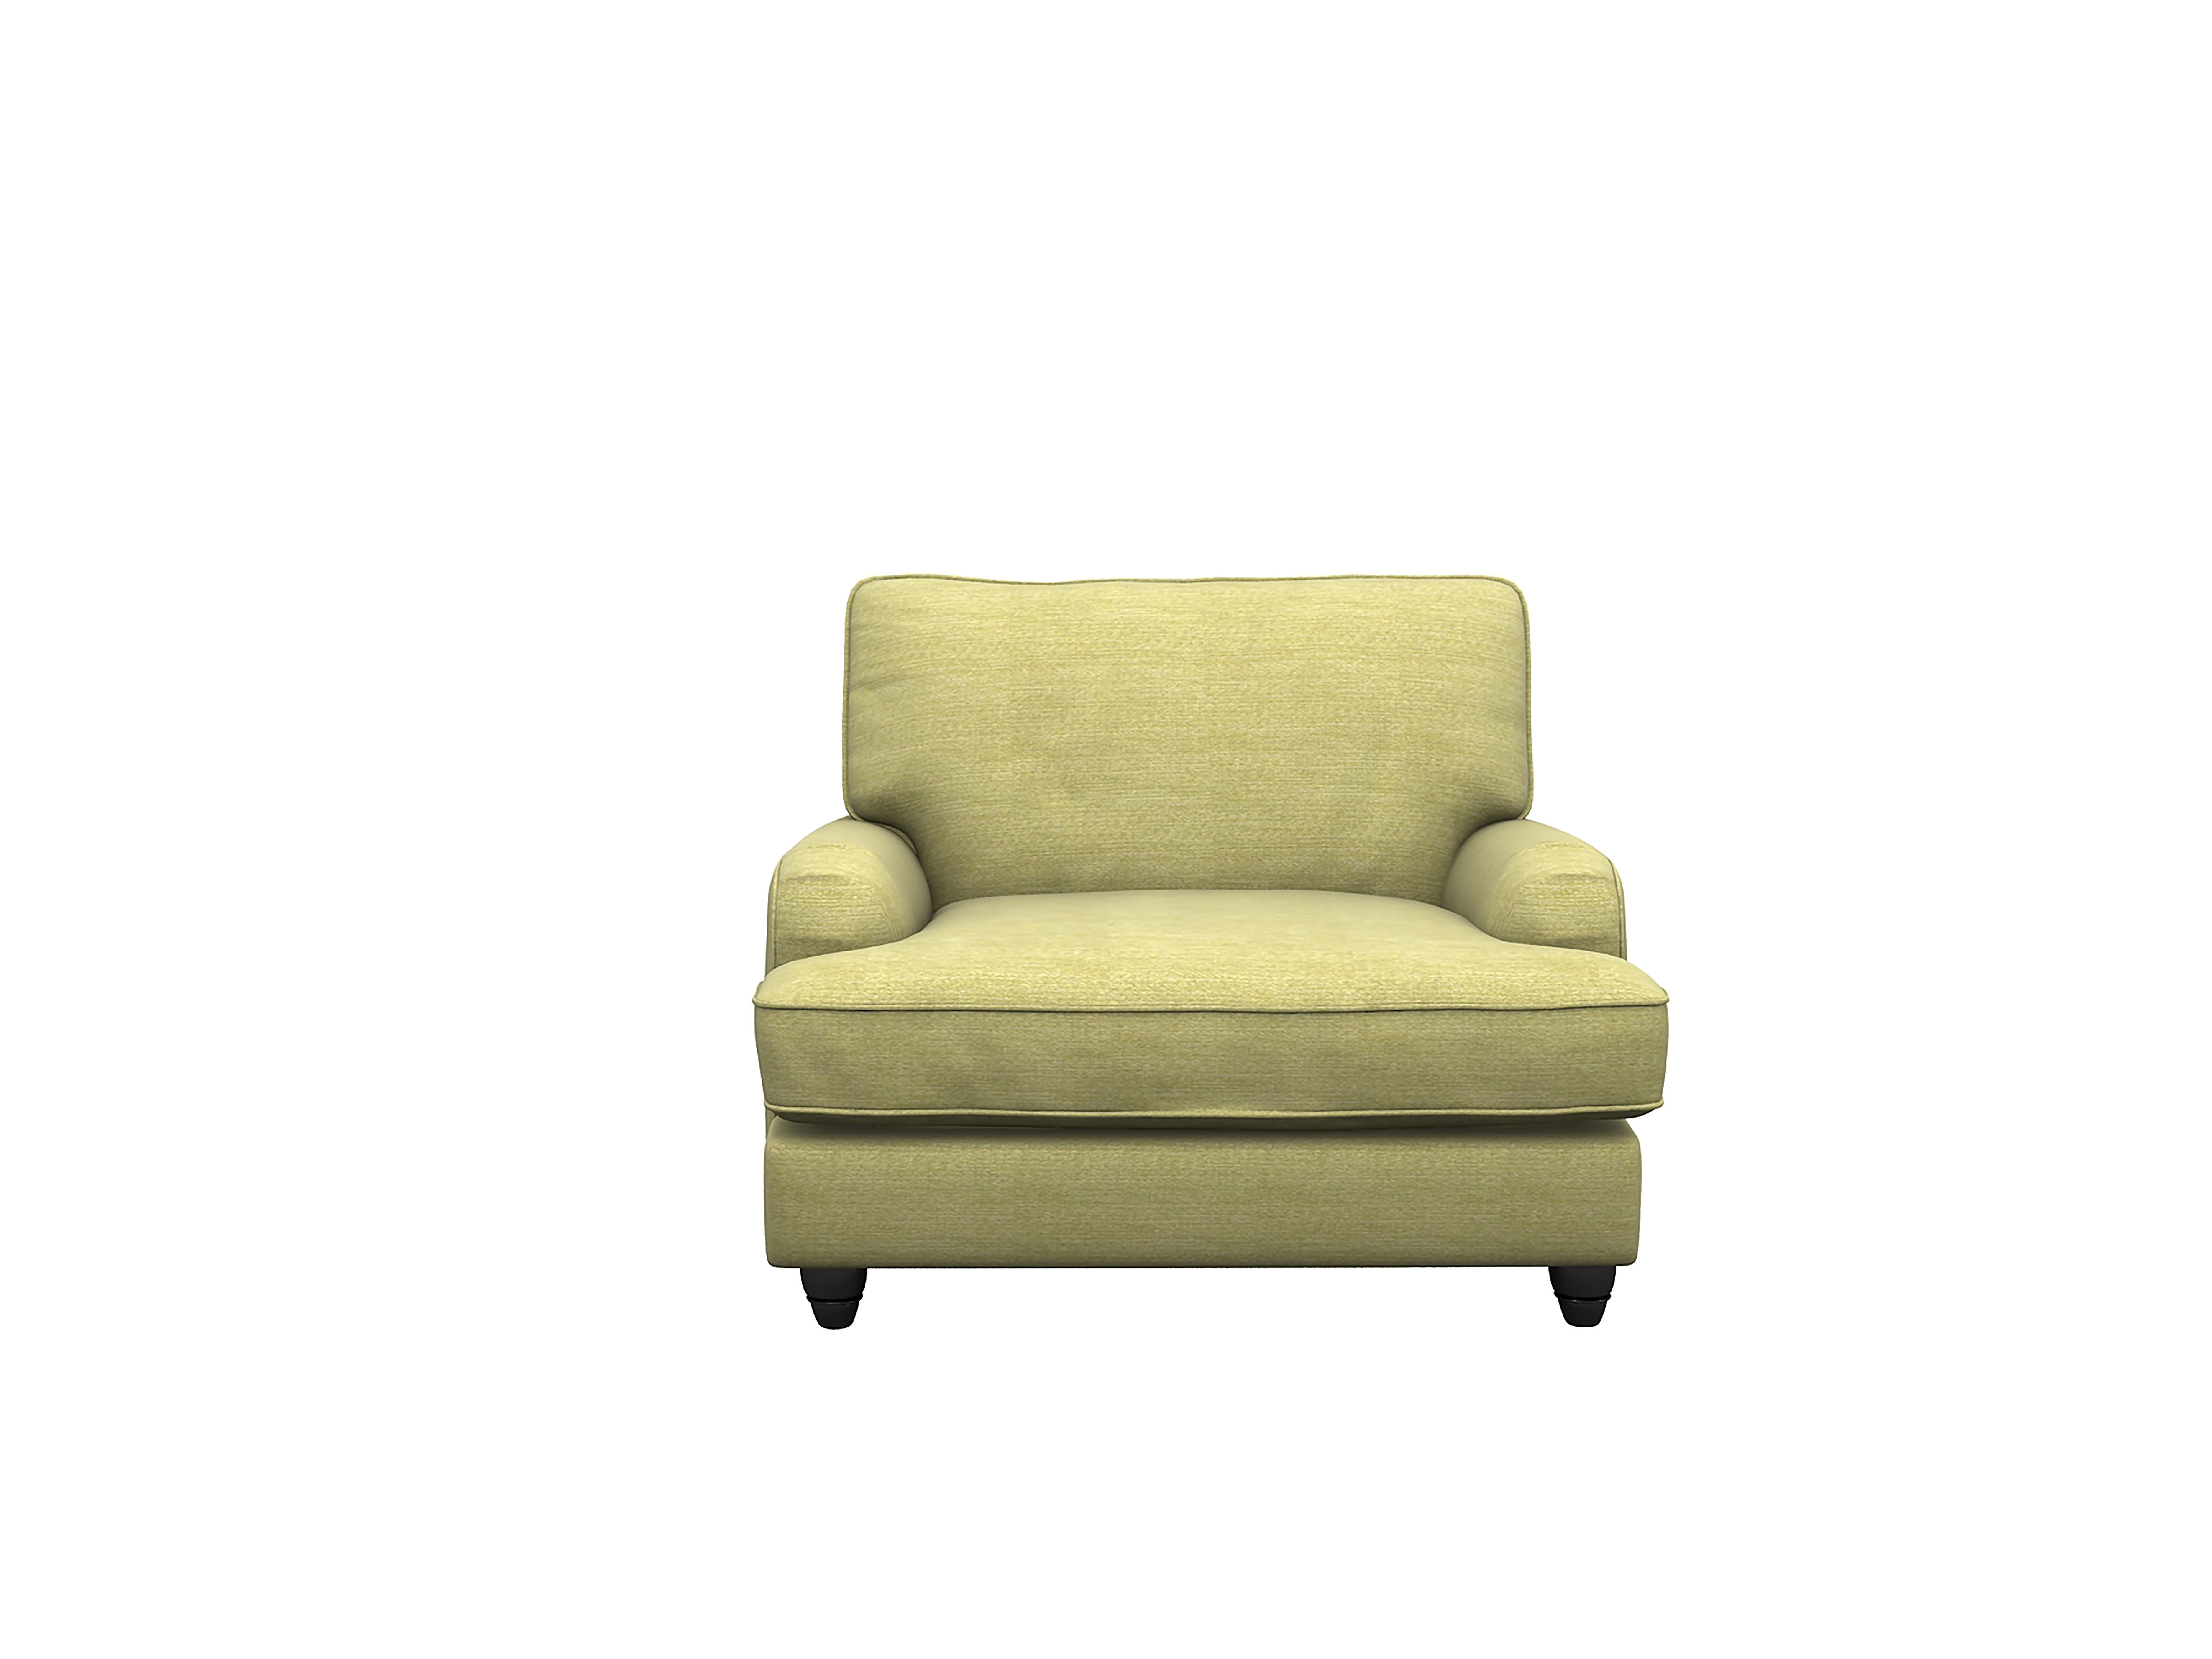 Image of Heart of House Adeline Fabric Chair - Lime Green